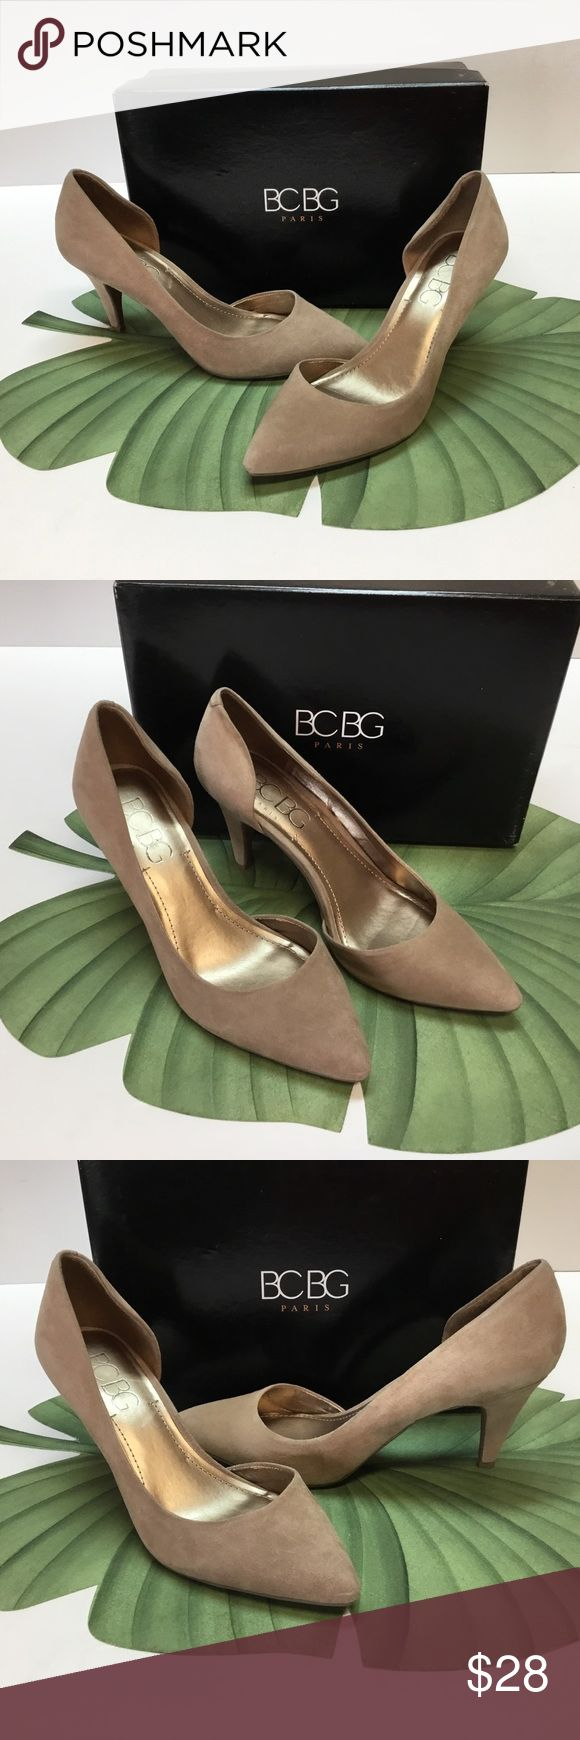 Beautiful Suede Leather Neutral Heels. BCBG I usually ship in 24 to 48 hours.  These beautiful leather suede, neutral pumps will accessorize so many of your outfits.  Size 7.50 M.  Heel height is 3.00 inches.  Nice padded footbed.  Comes in original box.  Hardly worn.  Very Good Condition. BCBG Shoes Heels